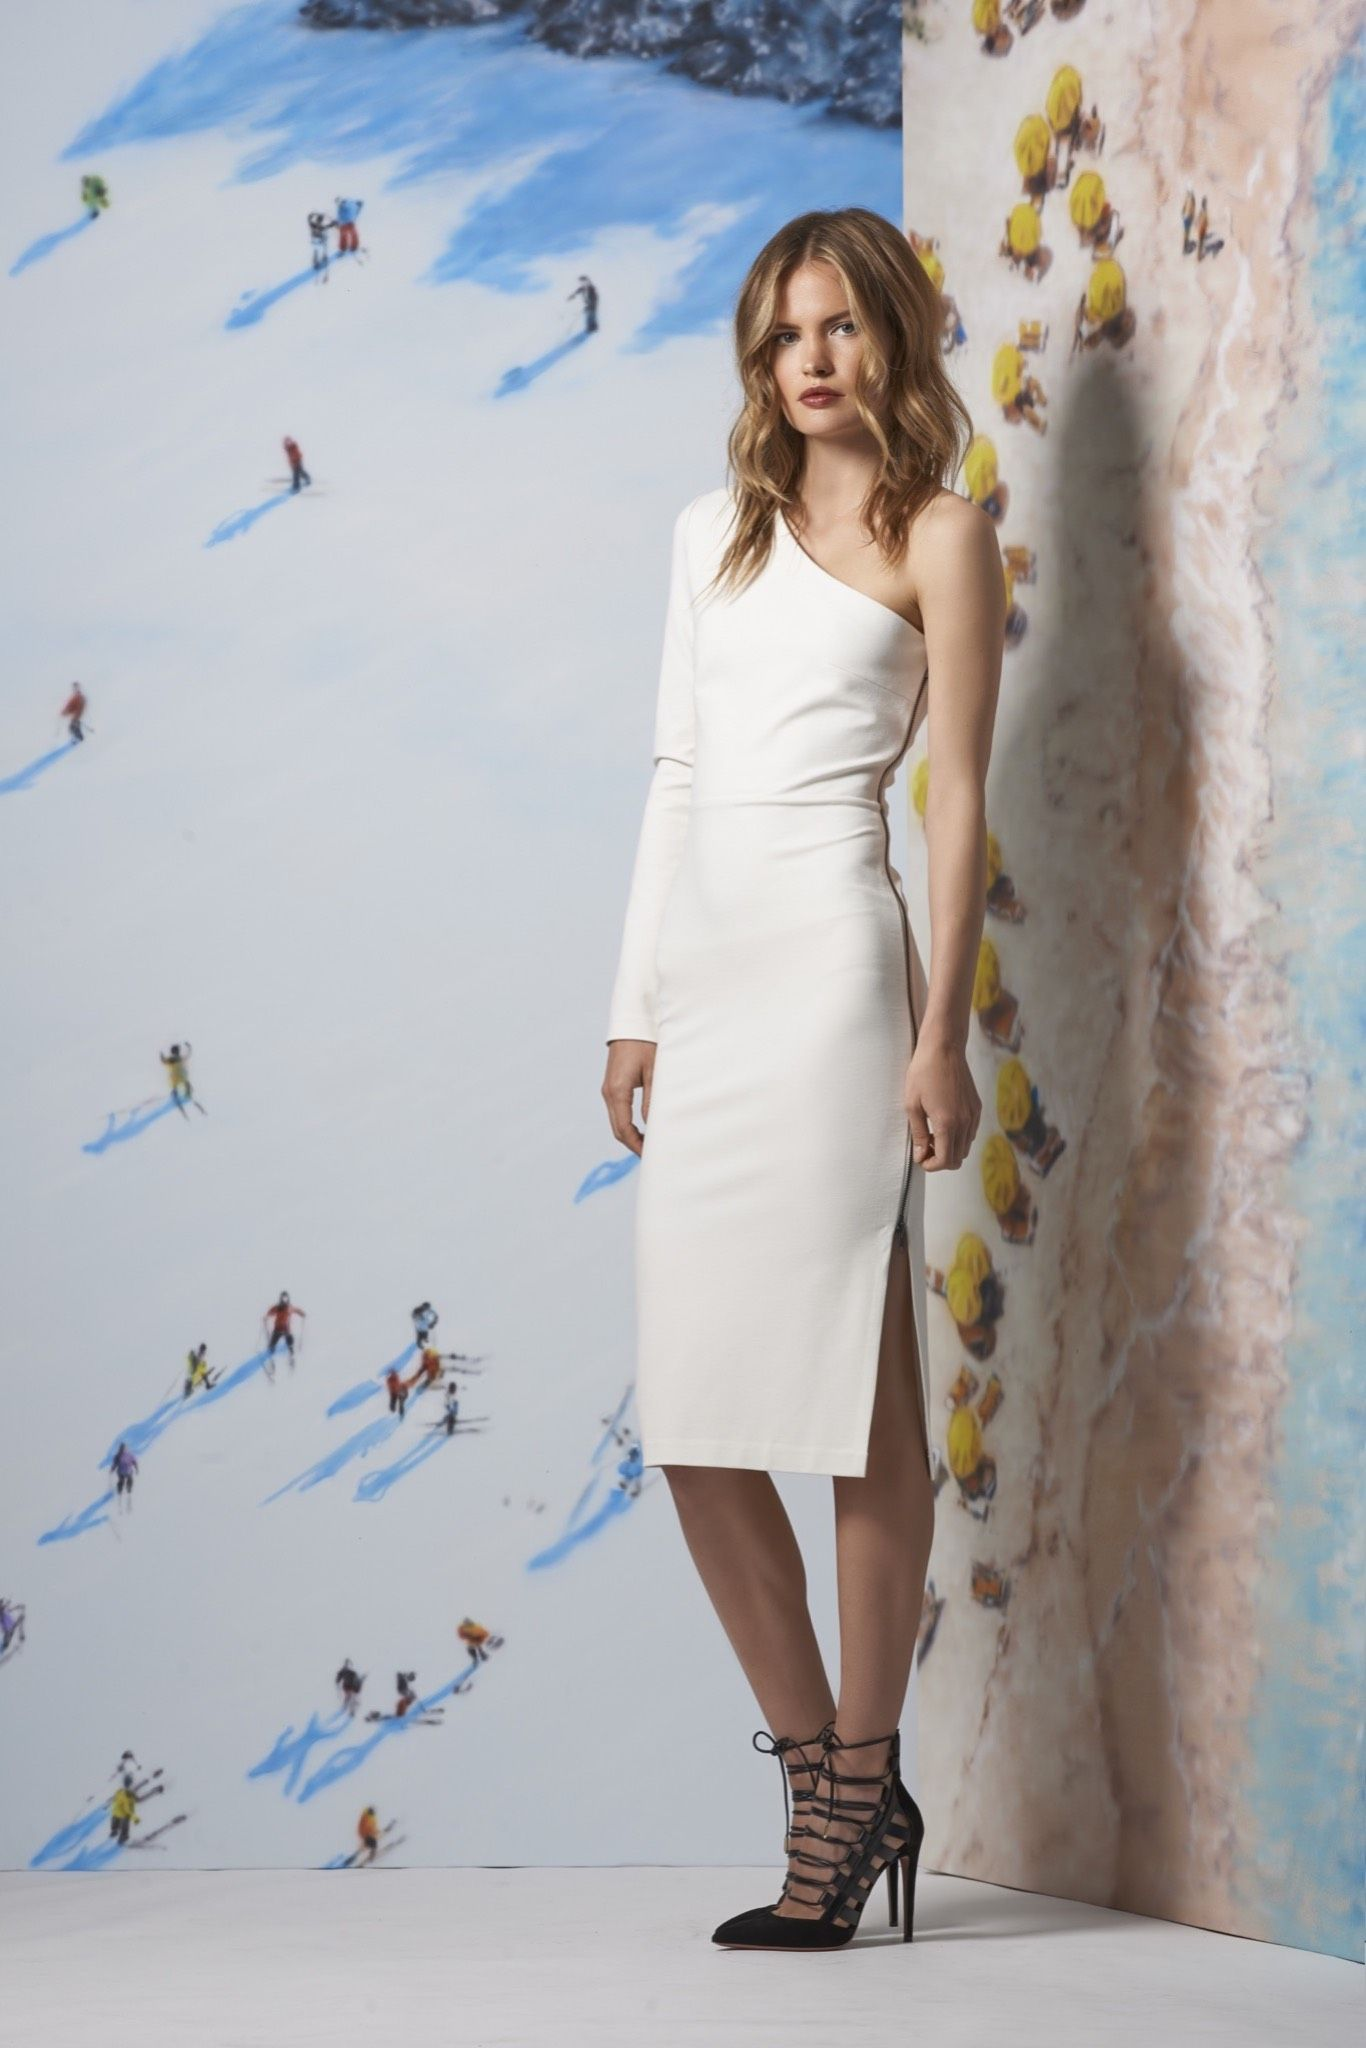 Veronica Beard Resort 2016 - Collection - Gallery - Style.com  Diane Kruger would look great in this dress!   http://www.style.com/slideshows/fashion-shows/resort-2016/veronica-beard/collection/7